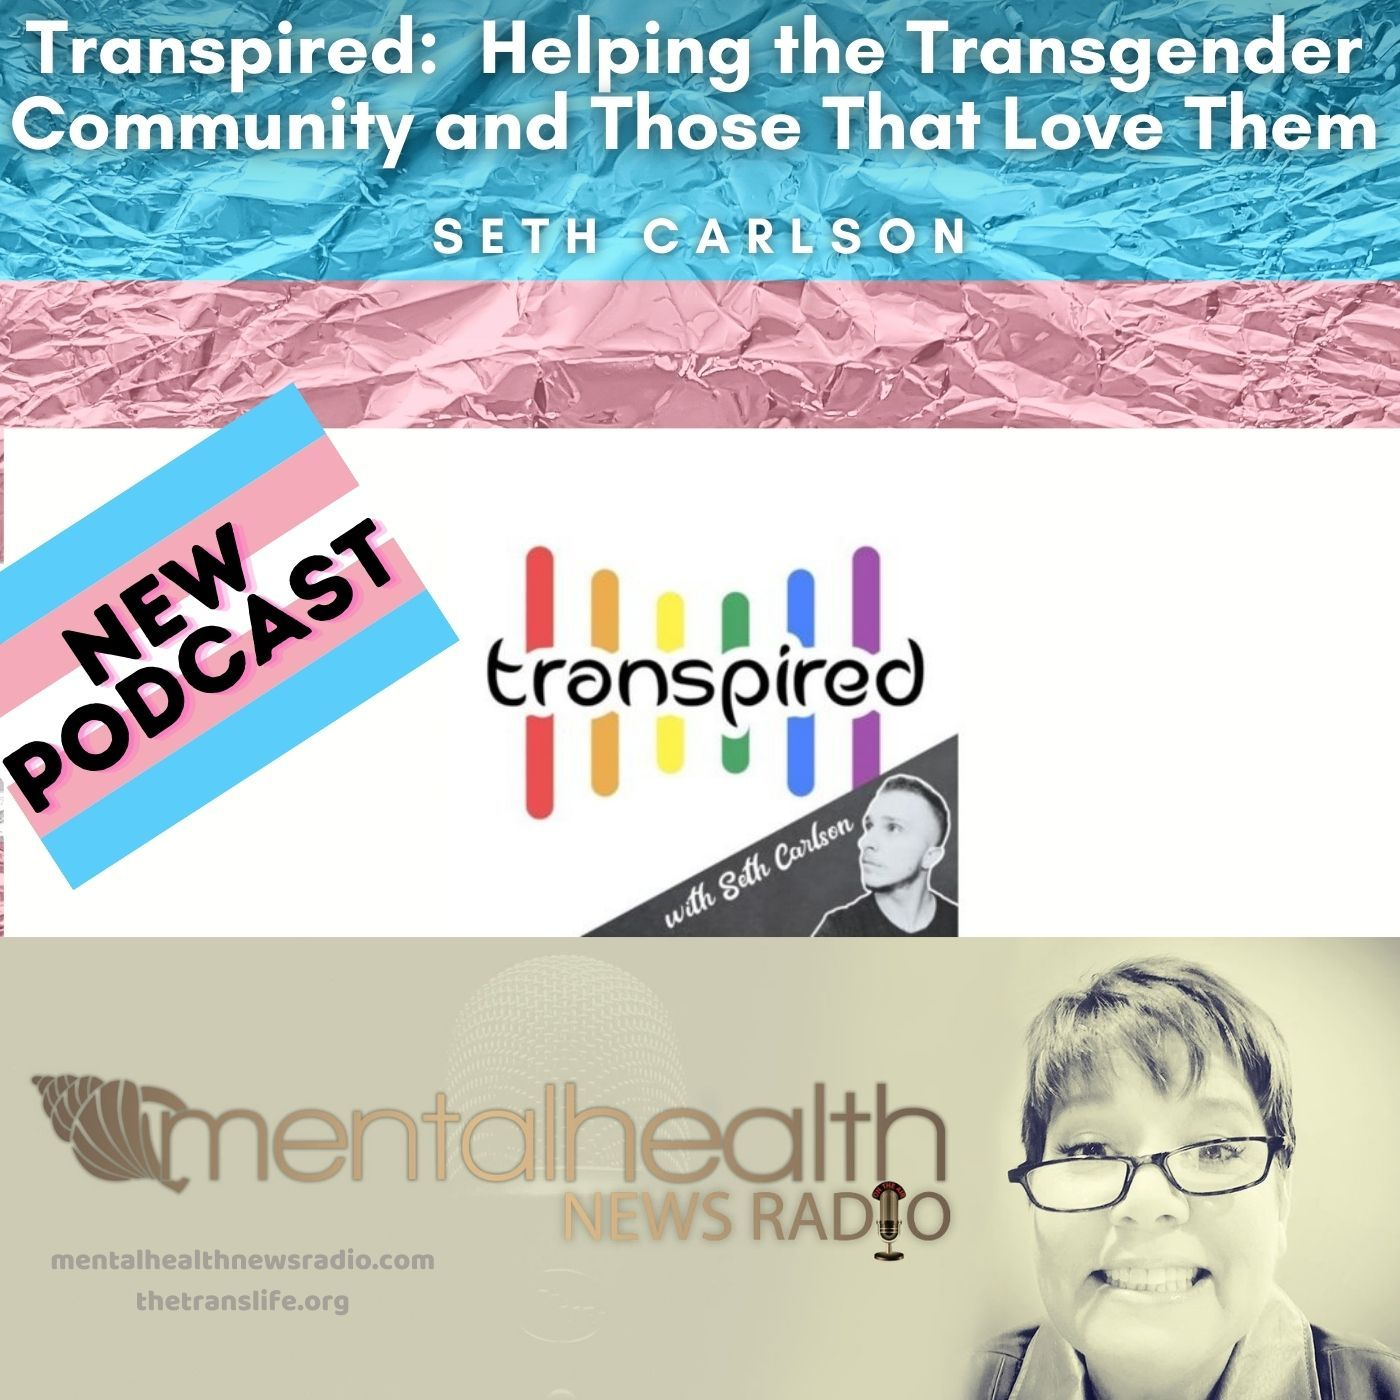 Mental Health News Radio - Transpired:  Helping the Transgender Community and Those That Love Them